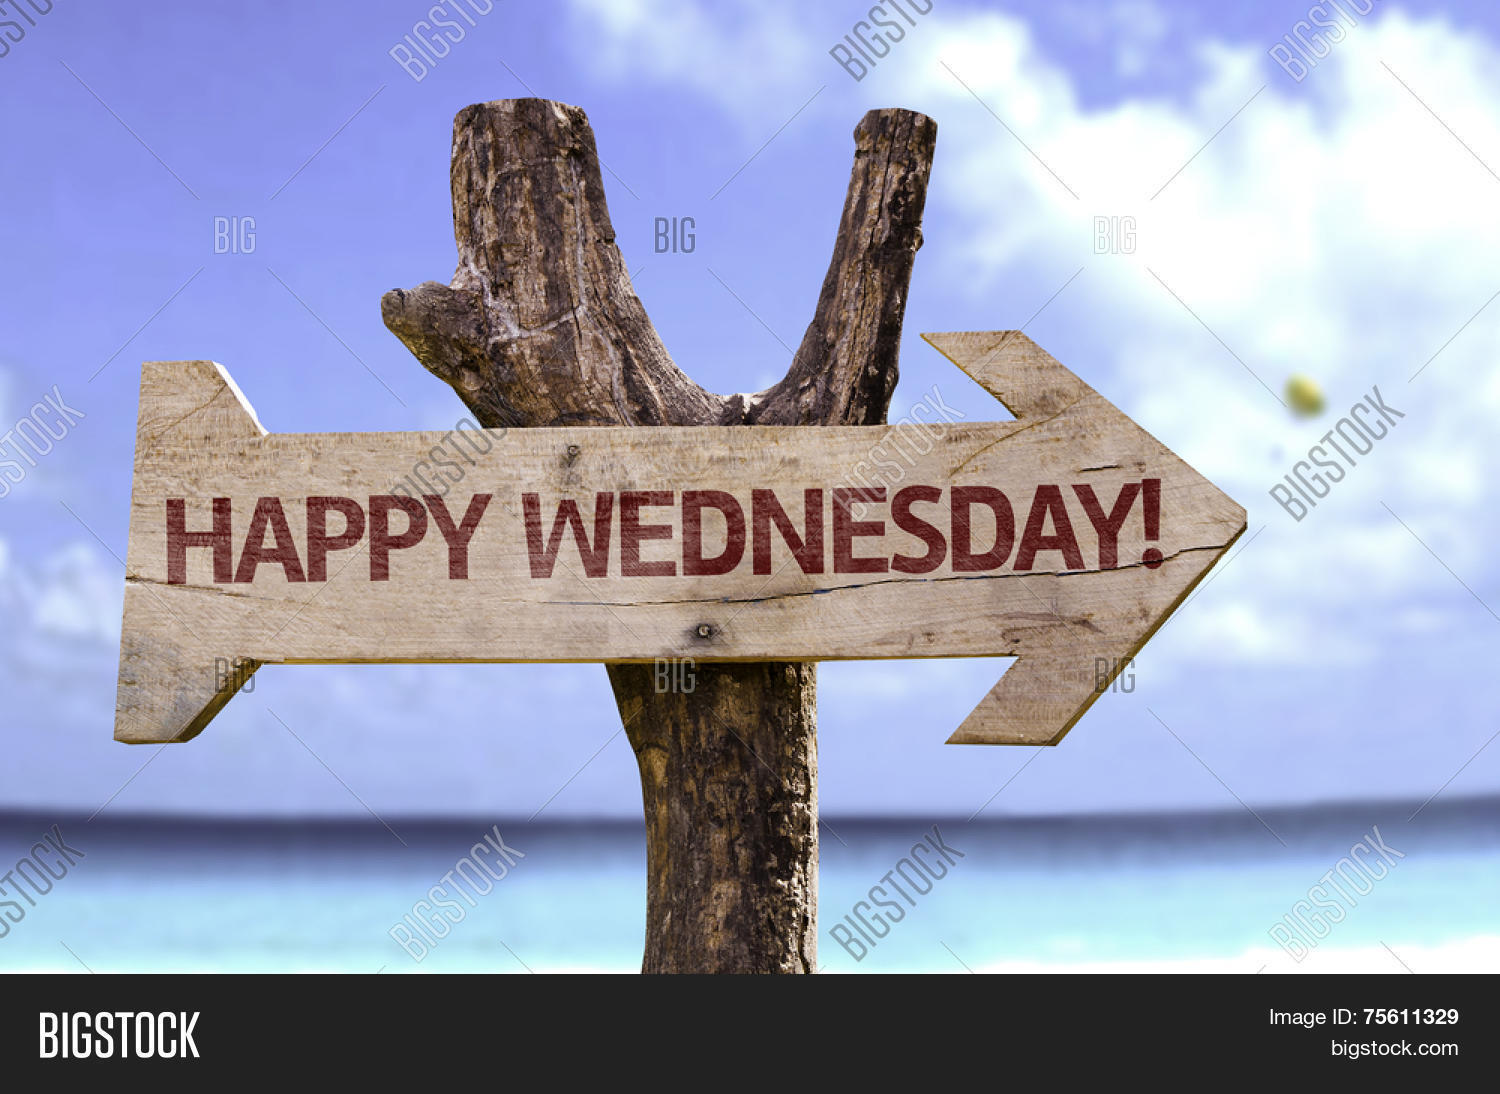 Happy Wednesday Sign Beach On Image & Photo  Bigstock. Concordant Signs. Mild Signs. Allergic Reaction Signs. Guideline Signs. Railway Crossing Signs. Dlj Ral Signs. Rain Garden Signs. Late Signs Of Stroke